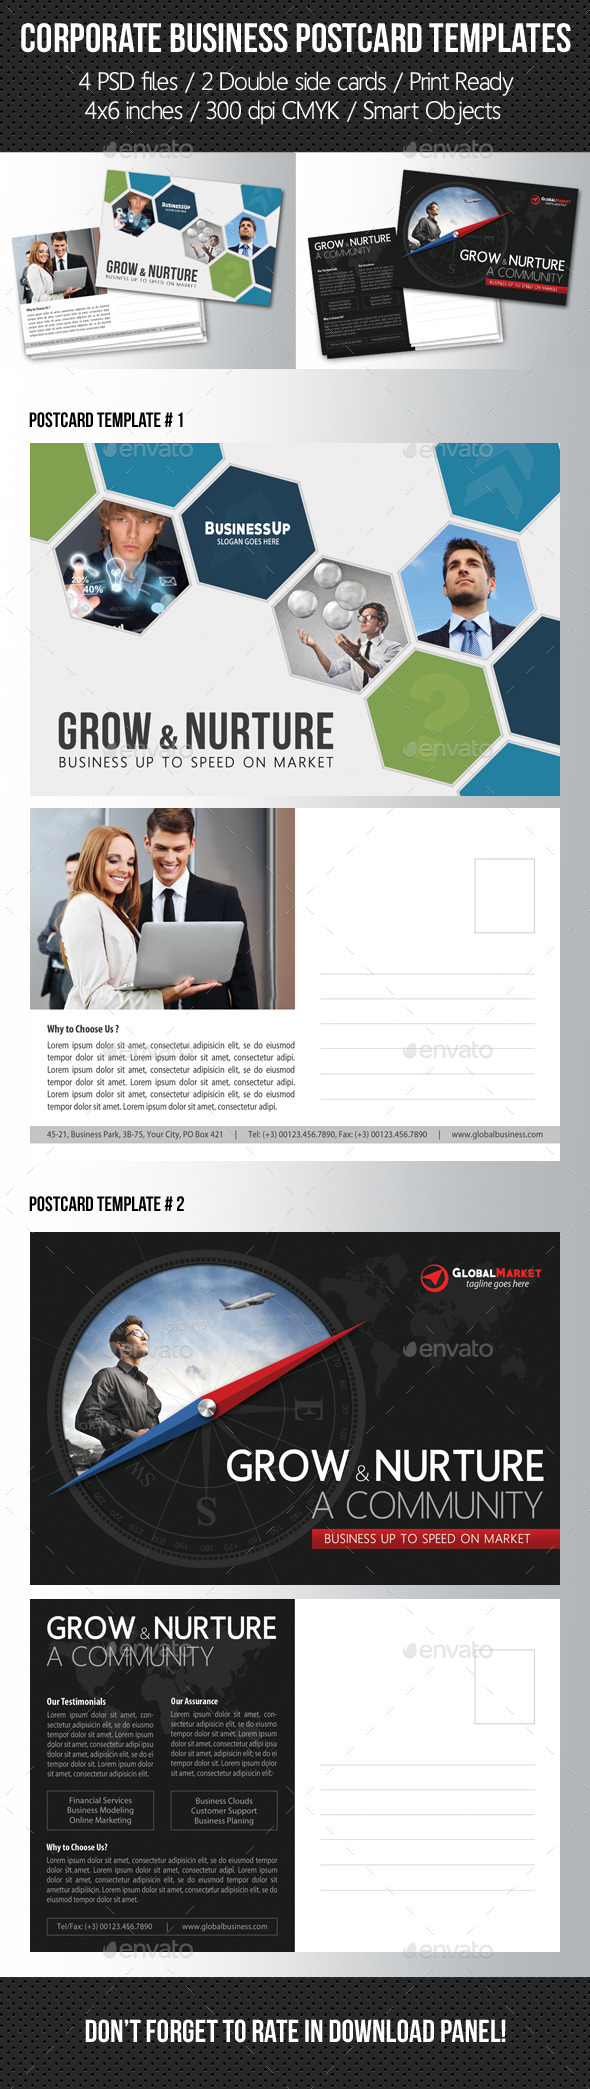 GraphicRiver Corporate Business Postcard Template Pack 11013662